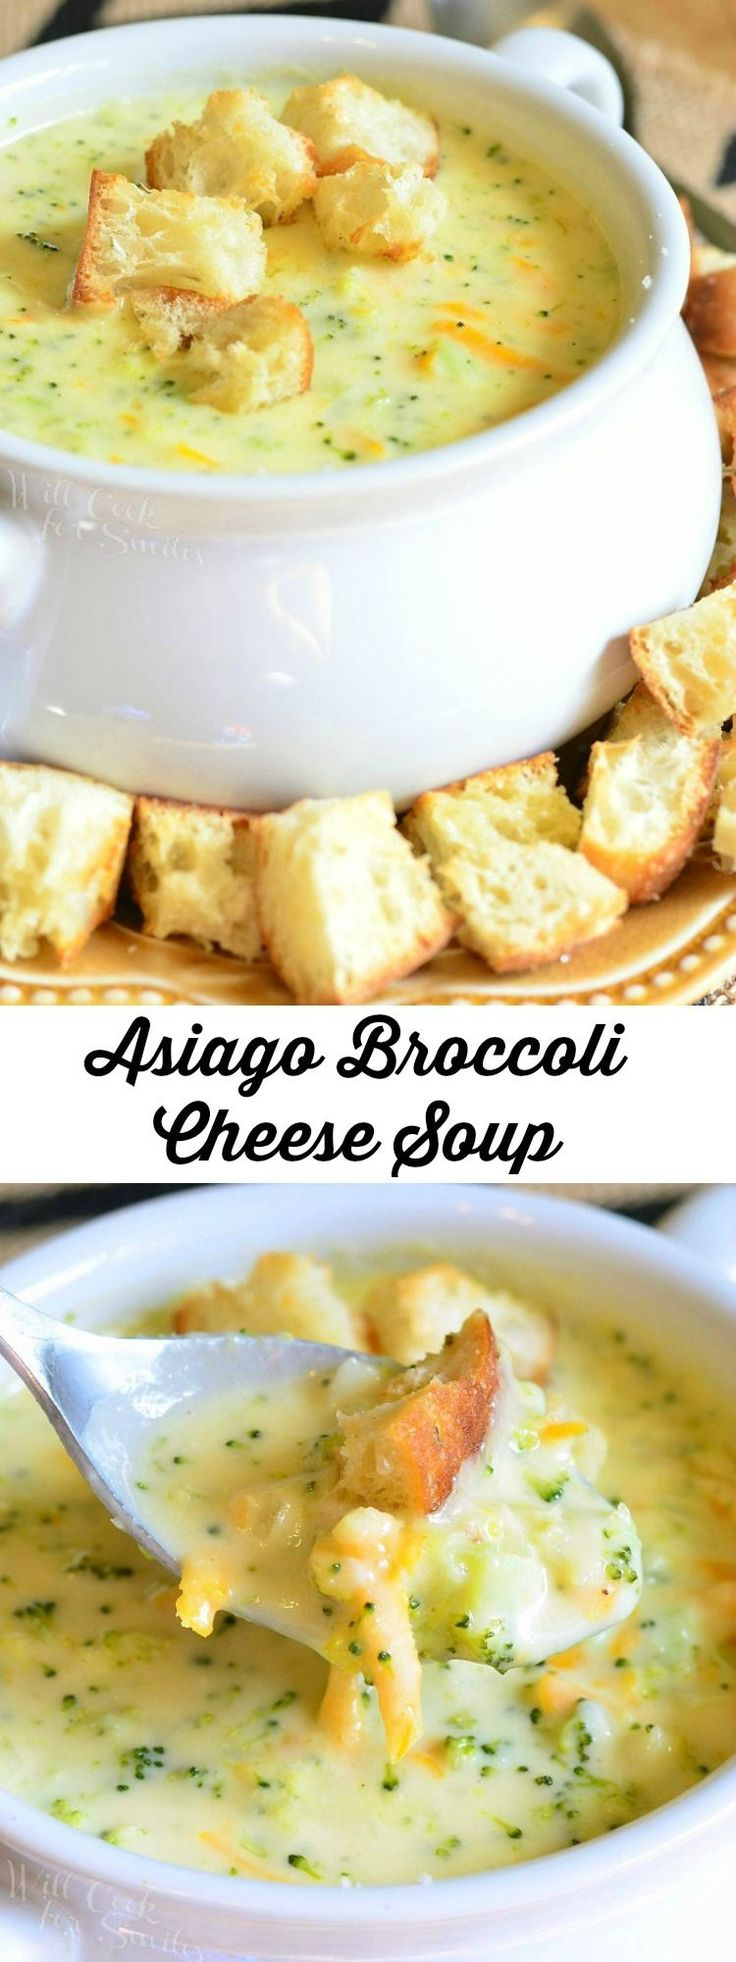 Asiago Broccoli Cheese Soup.